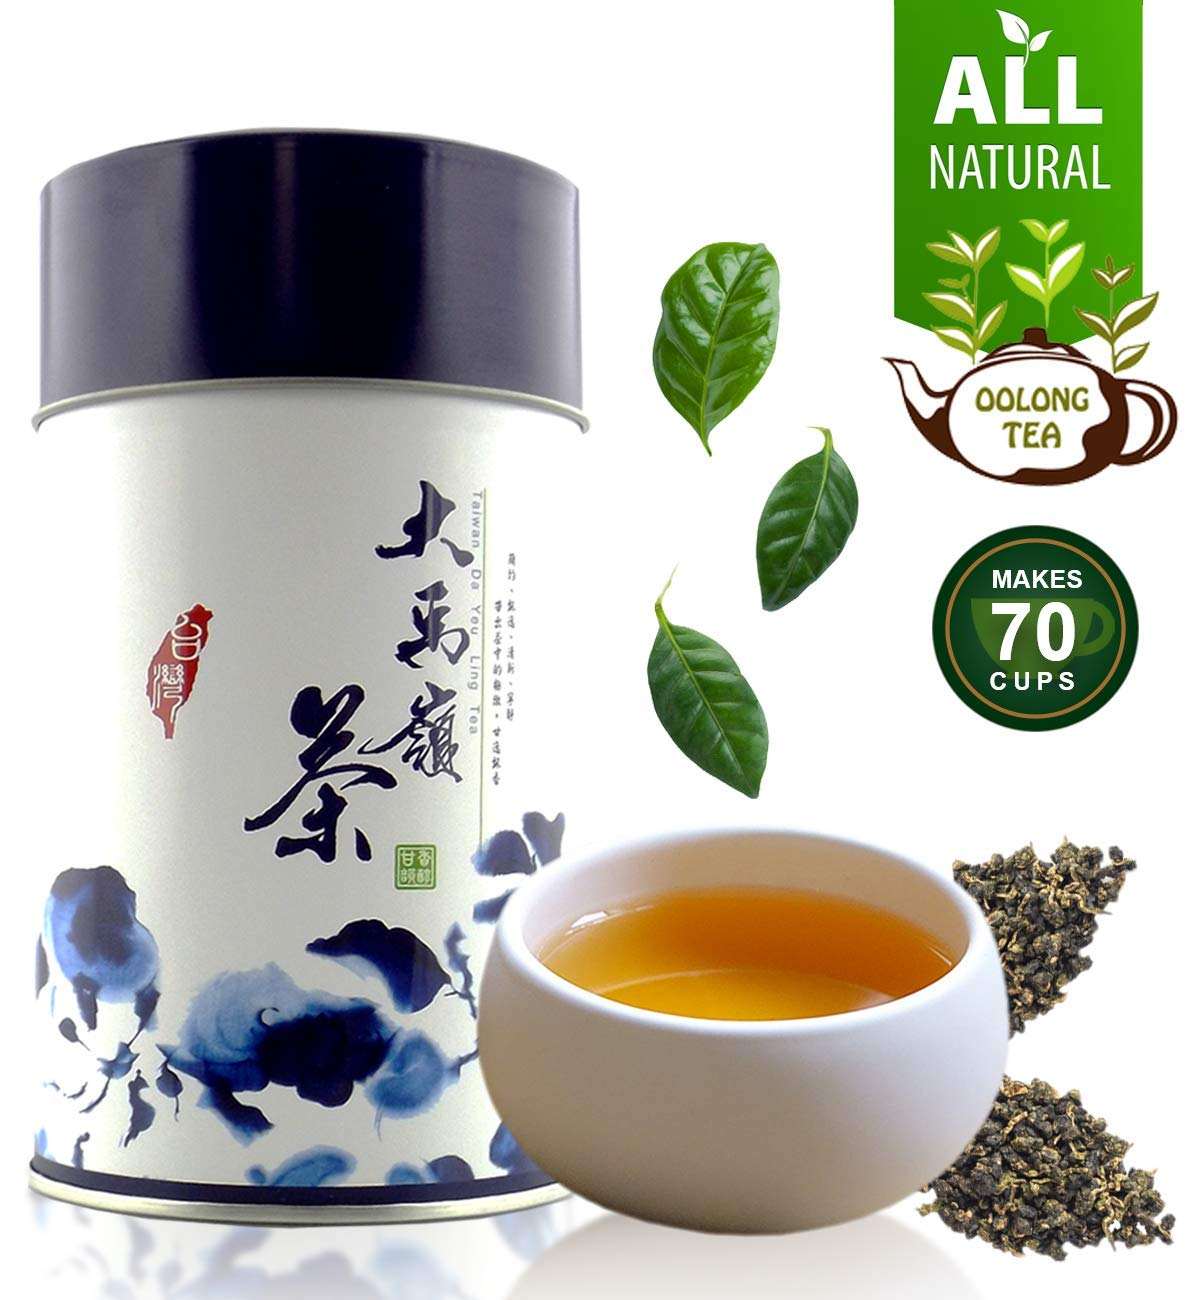 Oolong Tea Loose Leaf Hand-Picked from High Mountains Ali Shan Taiwan, Oolong Tea for Natural Detox, Improve Mental Functions, Boosts Metabolism, Helps in Weight Loss, 2X 5.3oz Sealed Bags Oolong Tea by zone365